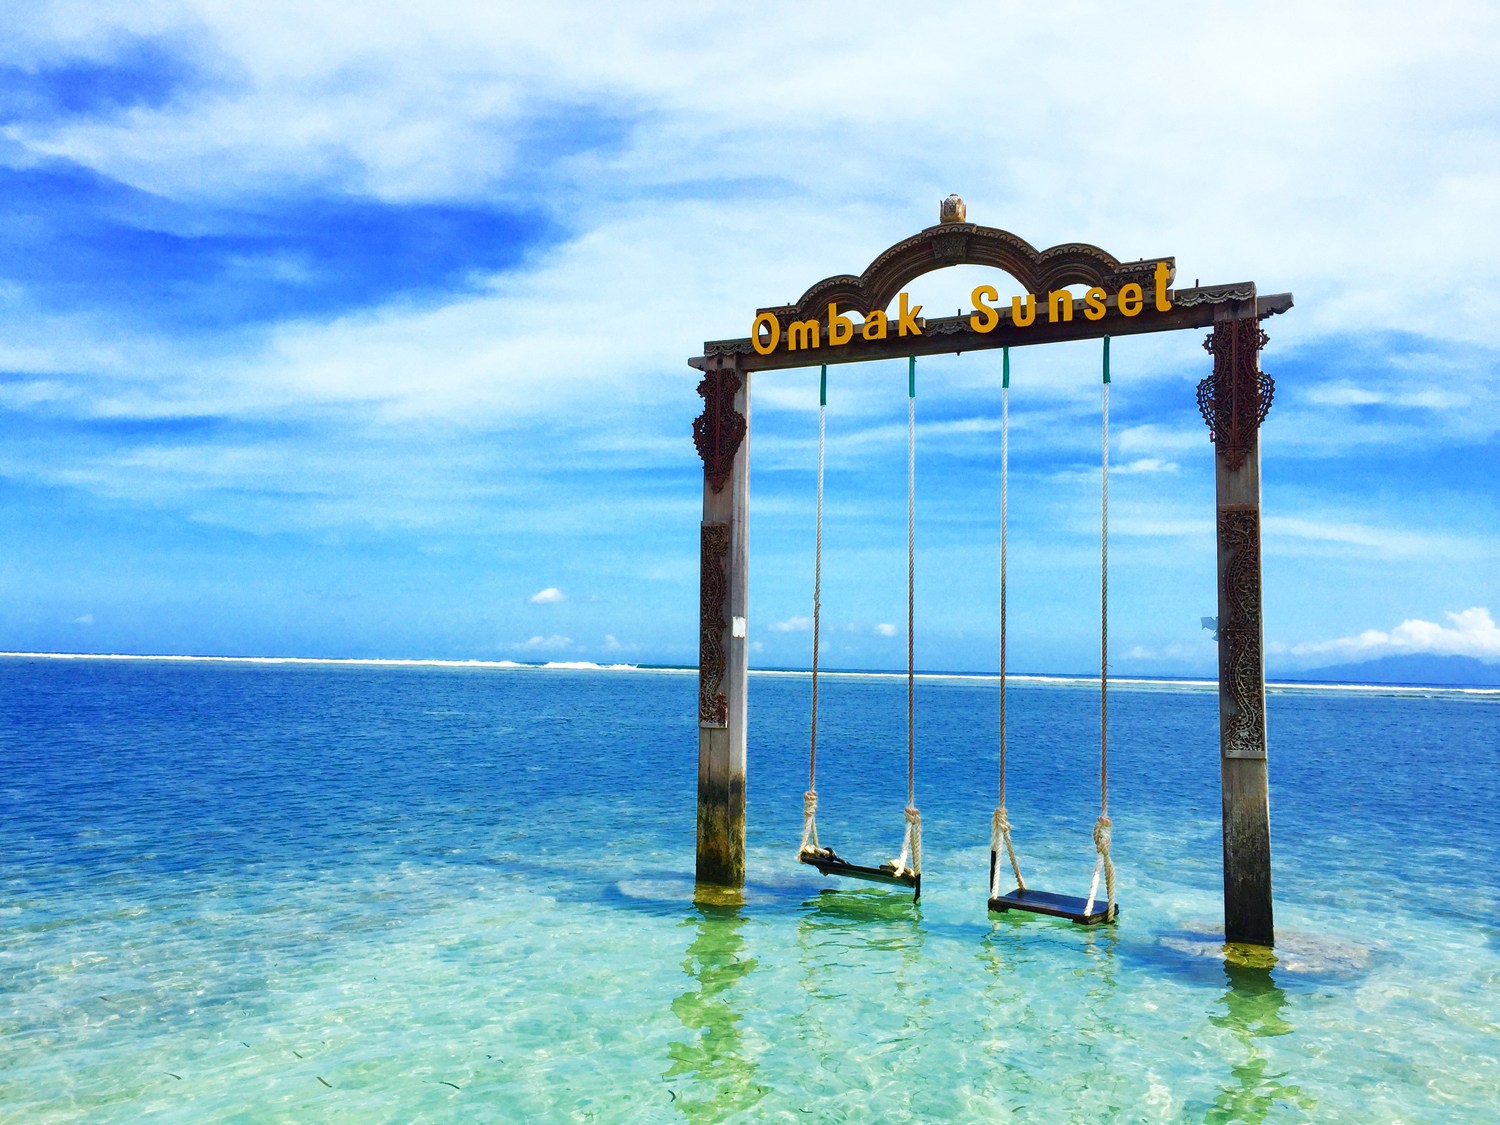 Ombak Sunset Swing Gili Trawangan Lombok Indonesia